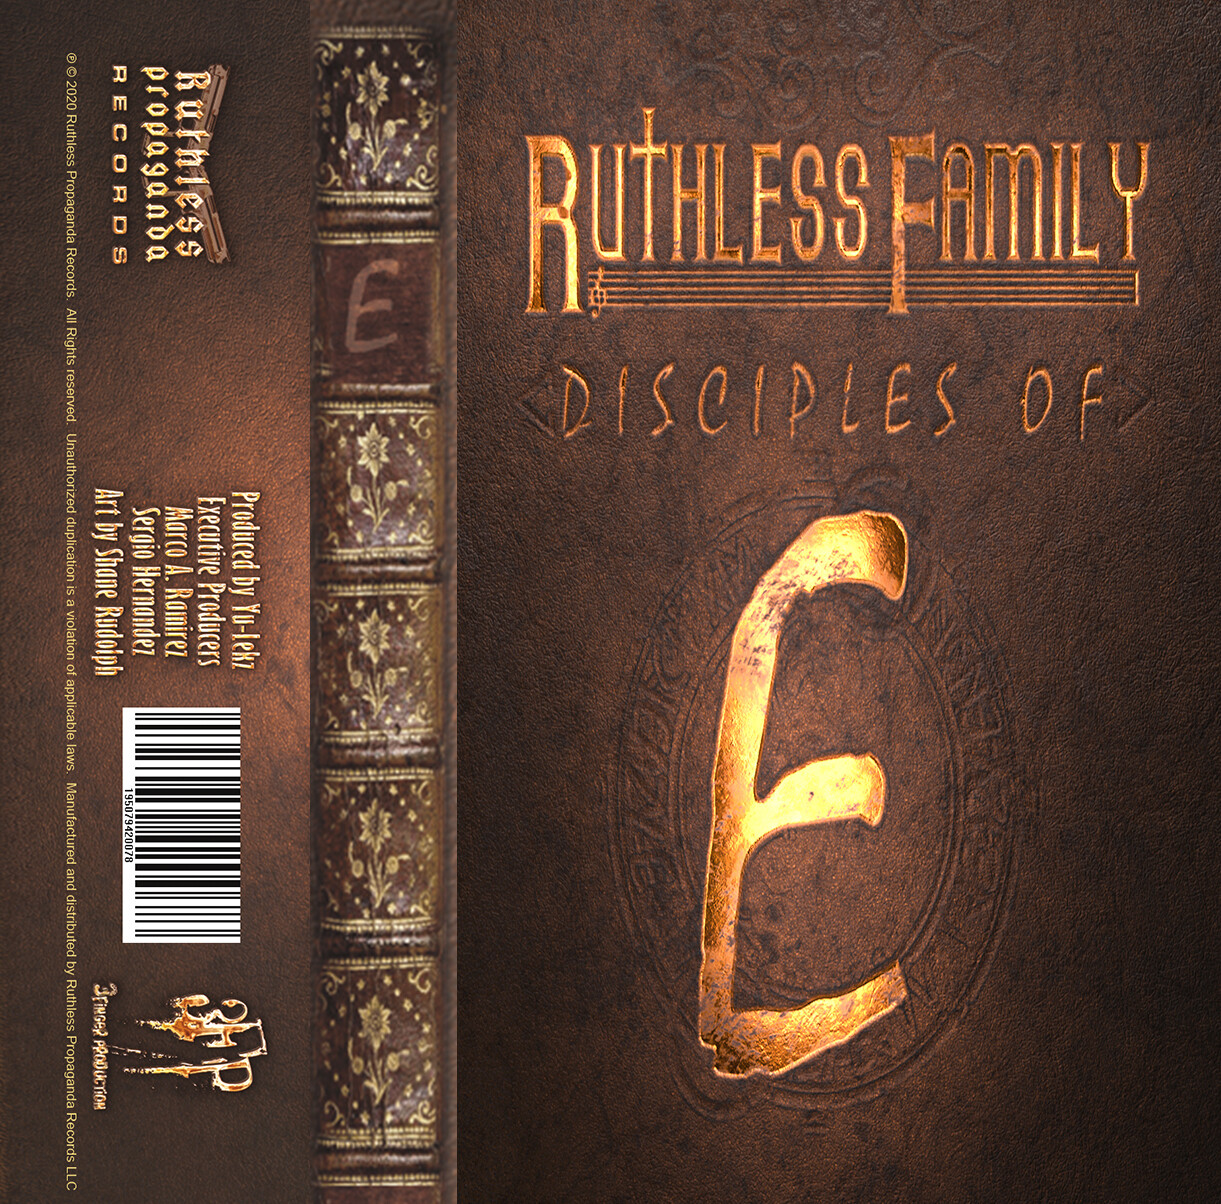 Ruthless Family : Disciples of E  (Cassette Tape + Digital) Limited Quantity #eazye #ruthlessfamily #tape